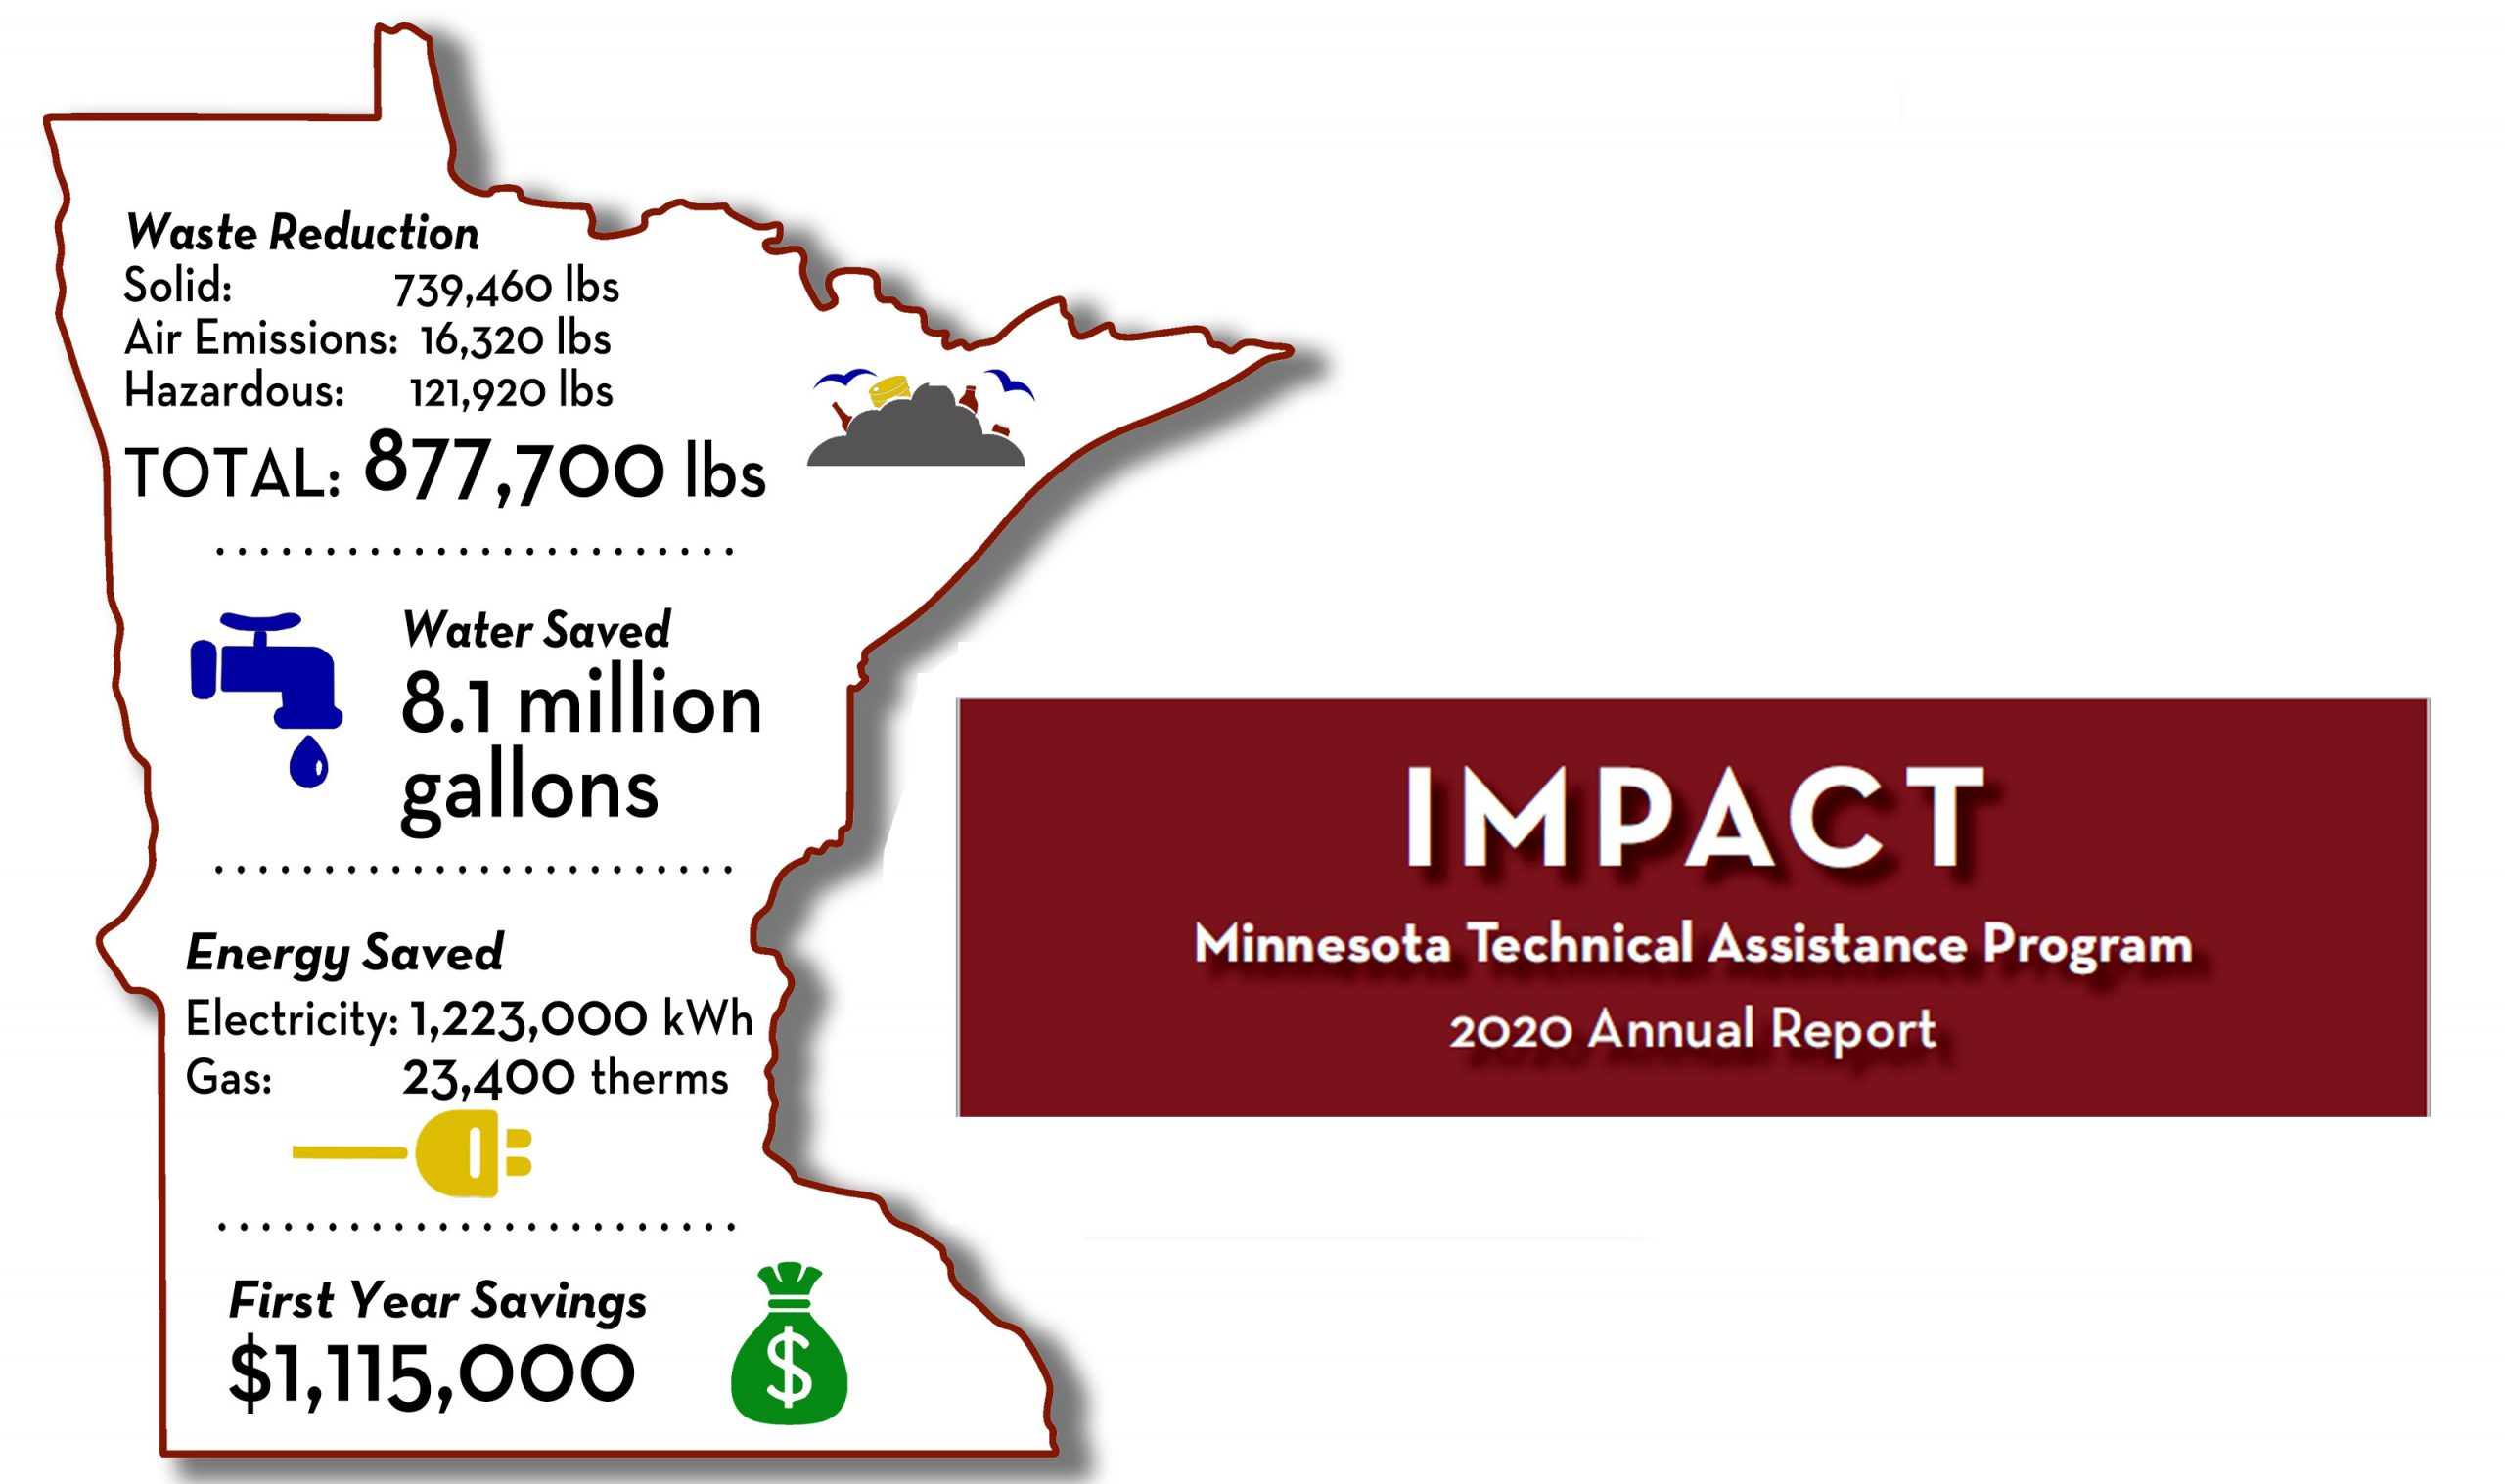 MnTAP Continues to IMPACT Minnesota Businesses